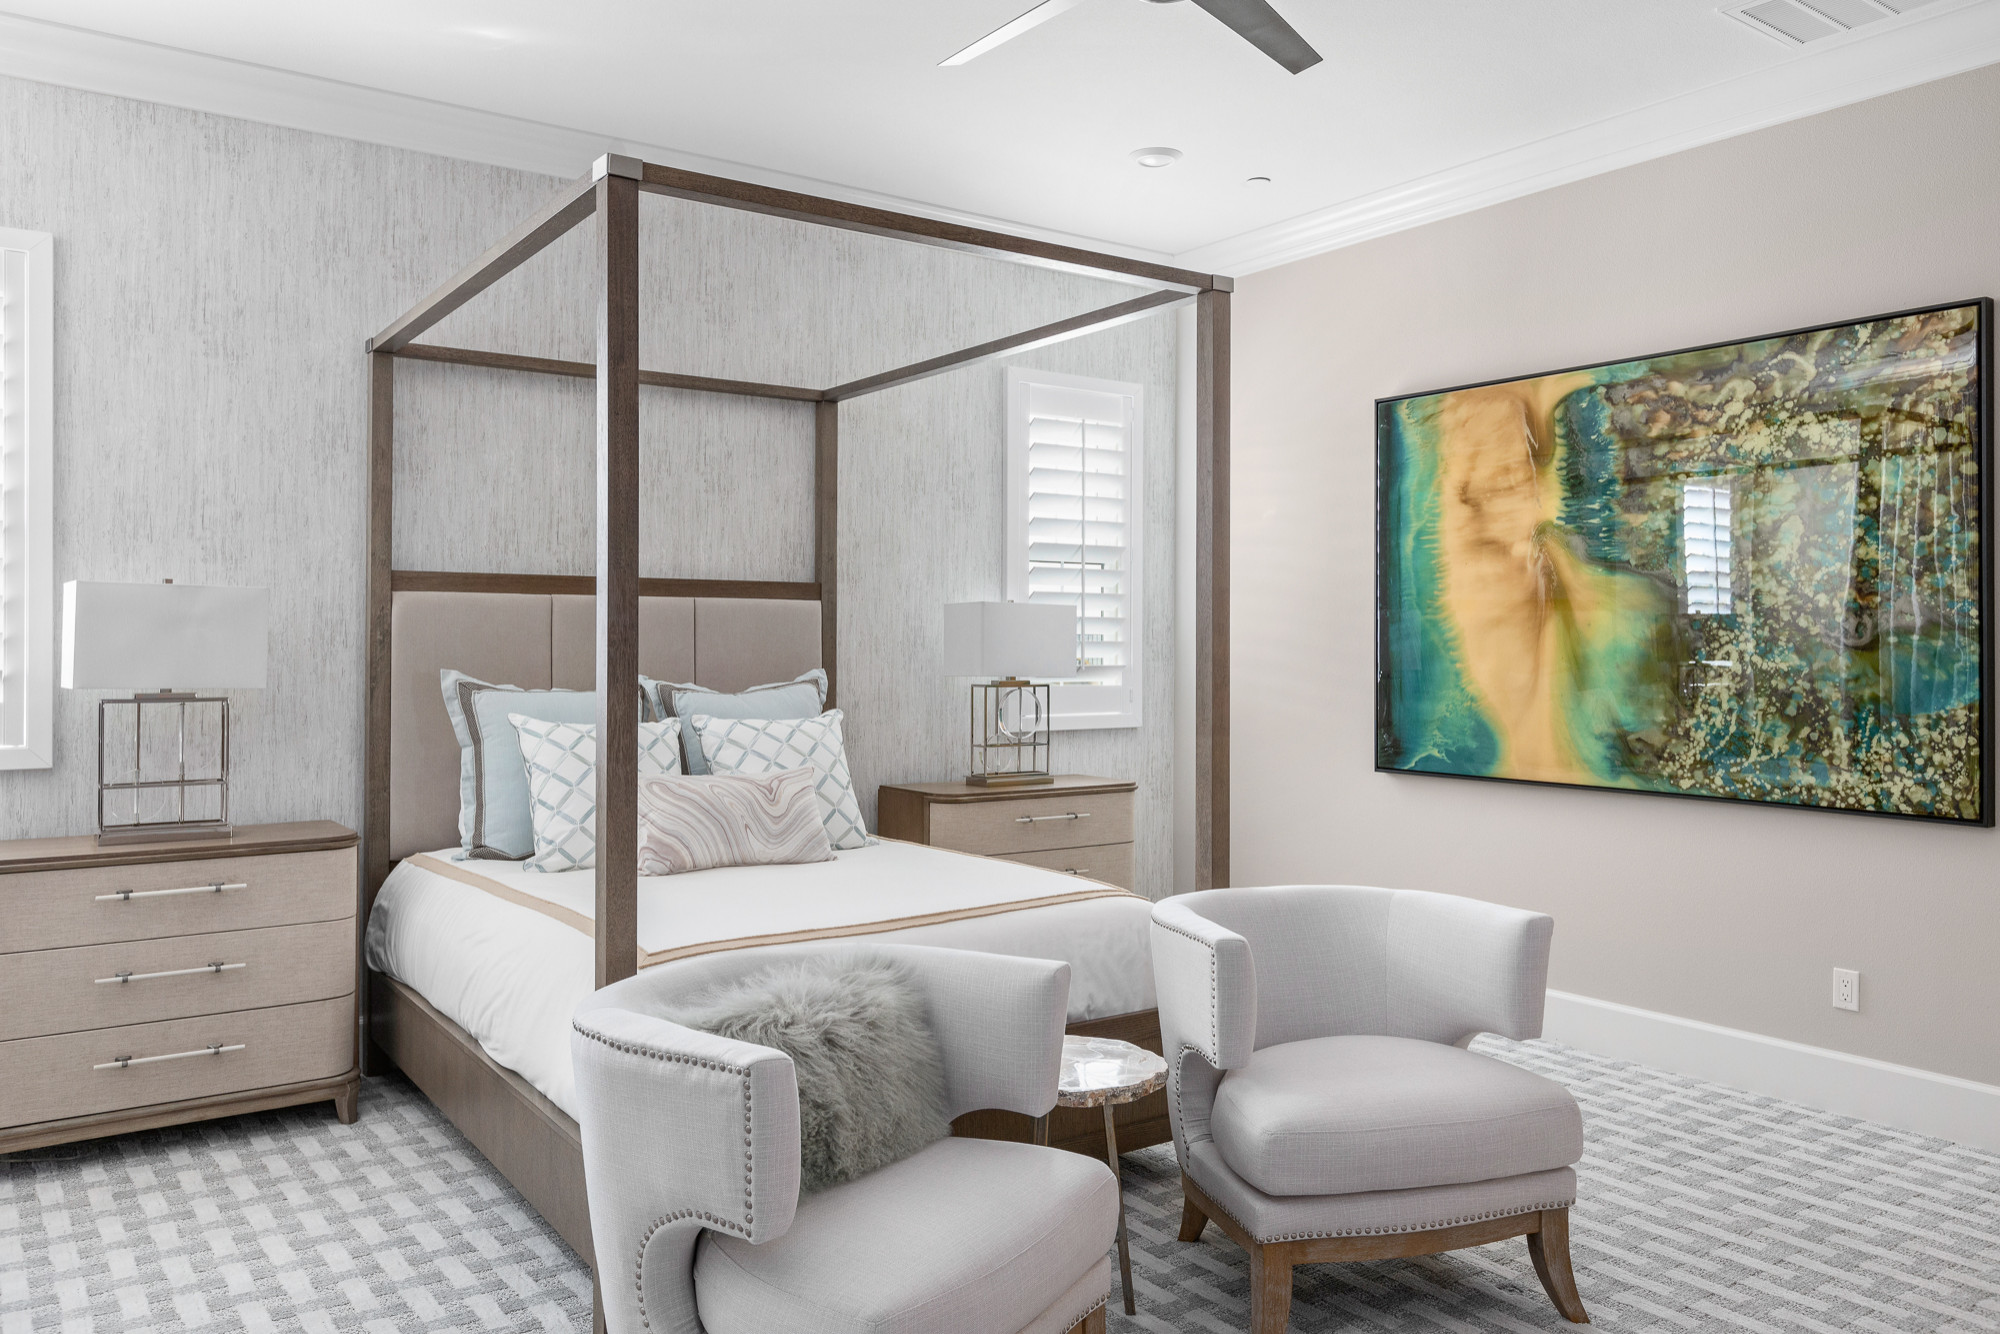 9 Beautiful Master Bedroom Pictures & Ideas - January, 9  Houzz